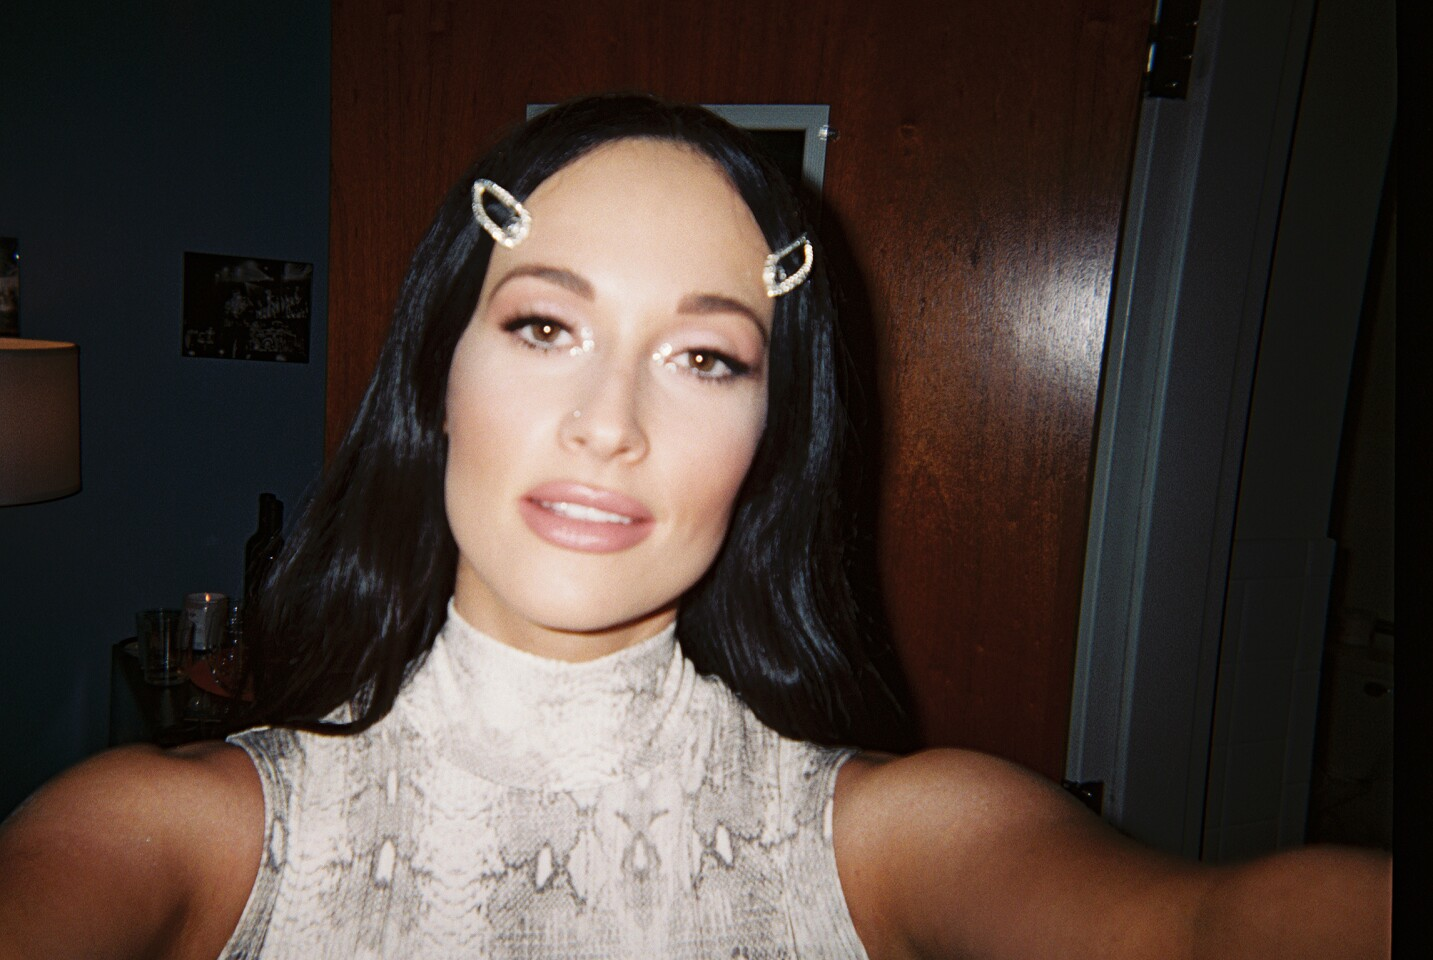 la-fi-kacey-musgraves-one-hour-photo08.JPG